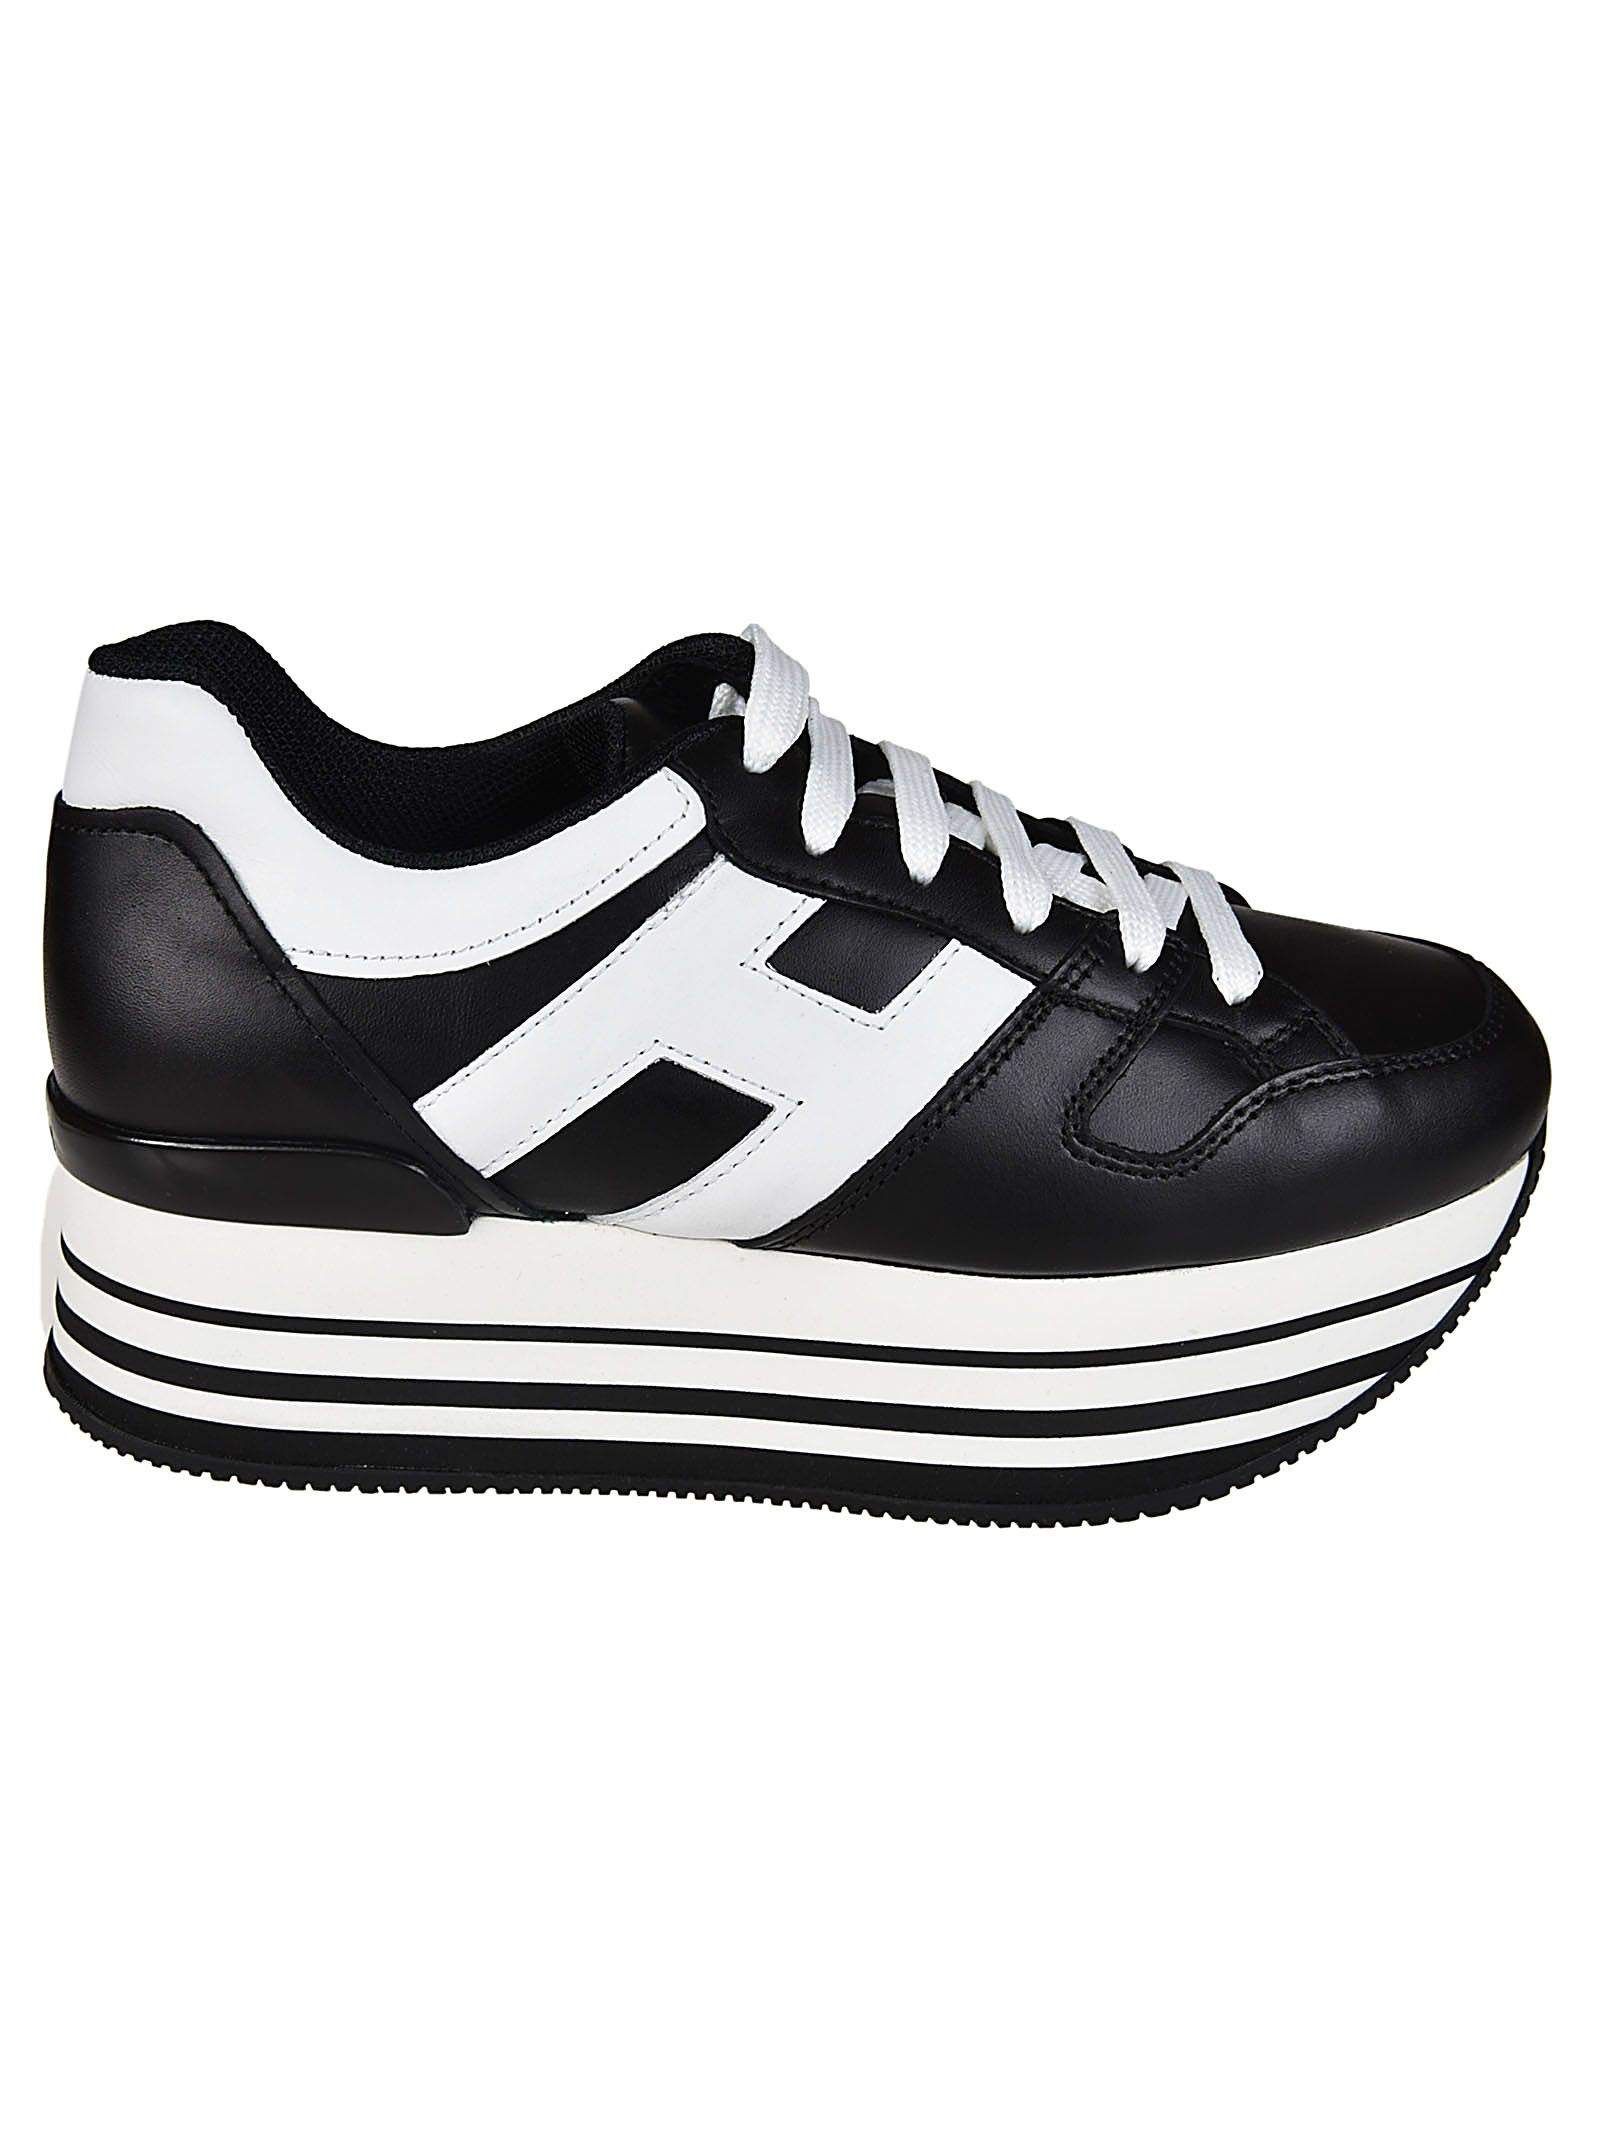 logo embellished platform sneakers - Black Hogan